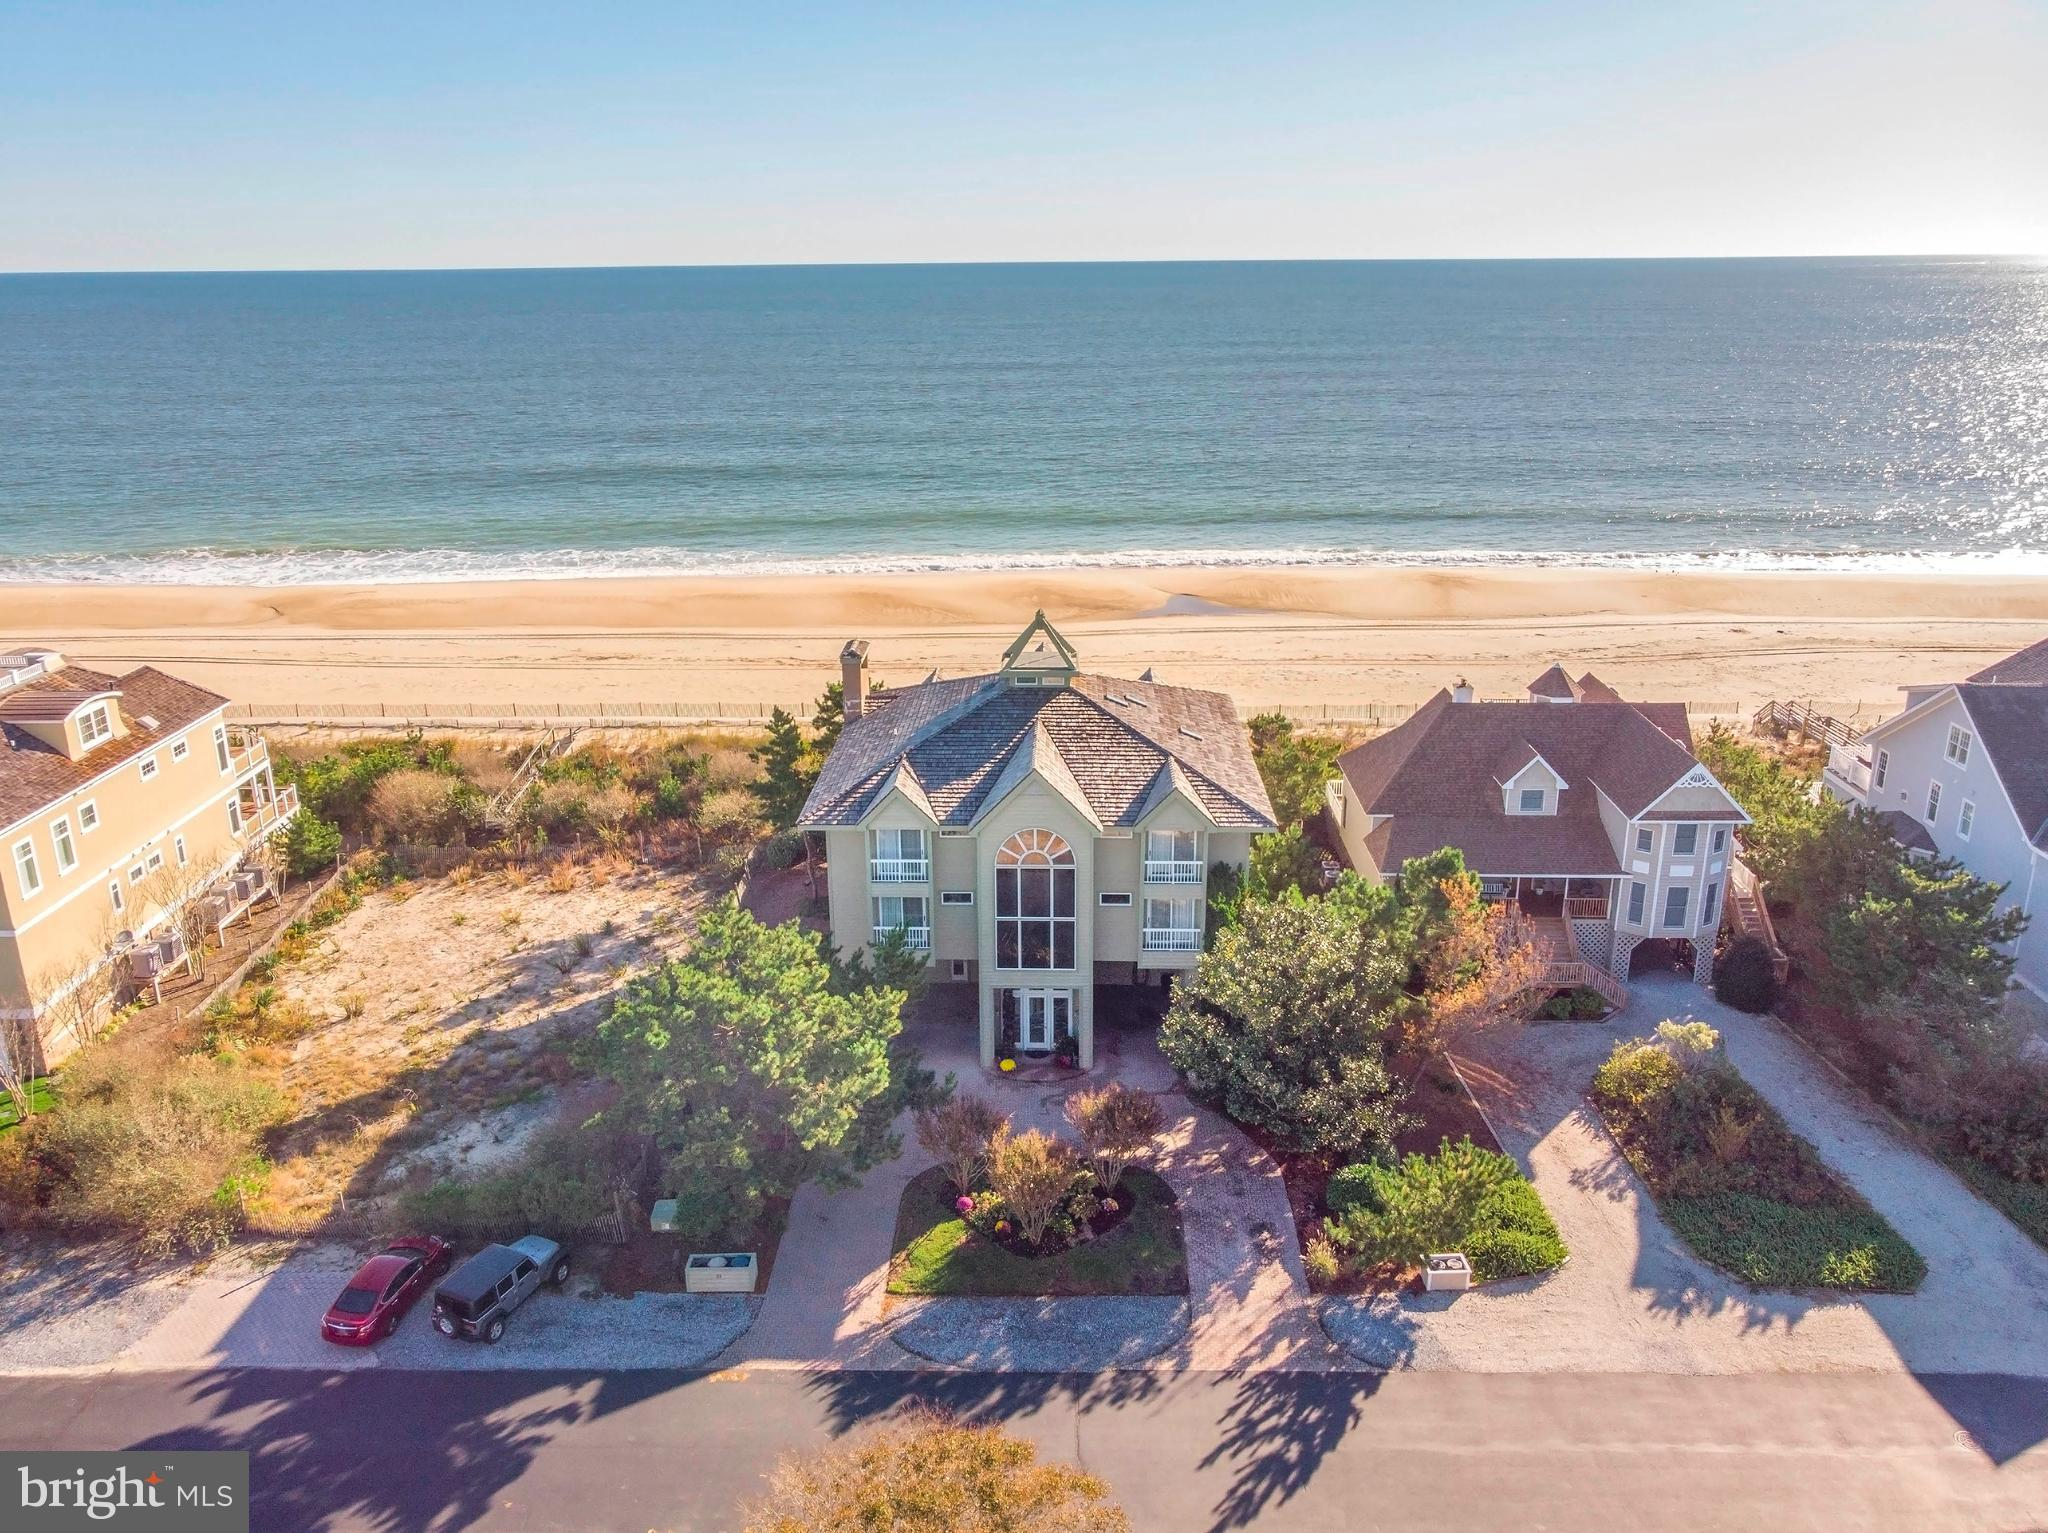 Welcome to the Pinnacle of Beachfront Living. Now is your opportunity to purchase one of the paramount properties in all of Delaware, offering spectacular ocean views with direct private beach access. Situated in a private, gated community in Bethany Beach which is known for its beautiful beach and dedication to providing a clean, safe, family atmosphere. This home boasts 8 Bedrooms(six w/en-suites) 8 Baths and 7000 sf of interior living space. Enter this quality constructed, custom built oasis by way of the soaring grand foyer. Ascend a few steps to the first floor which has the feel of a Casita or In-Law Suite with it~s spacious bedroom retreat, en-suite w/his and her closets and privacy of being the only bedroom on this floor. Convenient hall access to the Sauna, changing room, laundry room and direct access to the lower deck area. The lower deck offers an expansive breezeway, two outdoor shower rooms, large beach accessory storage room, a tranquil covered sitting area and direct beach access. The utility/mechanical room completes this level. The main level offers dual front facing bedrooms, each with a private balcony, large en-suite, walk in closet and double sink vanity. In addition, there is a third bedroom with close access to a half bath. The stunning 2 story Great Room boasts a cohesive blend of granite stonework and tasteful finishes to create an inviting gathering area complete with glorious ocean views. The open dining area connects to the expansive eat-in kitchen that features endless granite countertops with matching backsplash, stainless appliances, tons of cabinet storage and bright skylights over the inviting eating area. The massive main deck provides plenty of space to entertain, relax or simply to soak up the sun.  Head up to the top floor where you will find two additional front facing bedrooms each with their own balcony, en-suite and walk-in closet. Also find a bonus room currently being used as the eighth bedroom but could be used as a home 